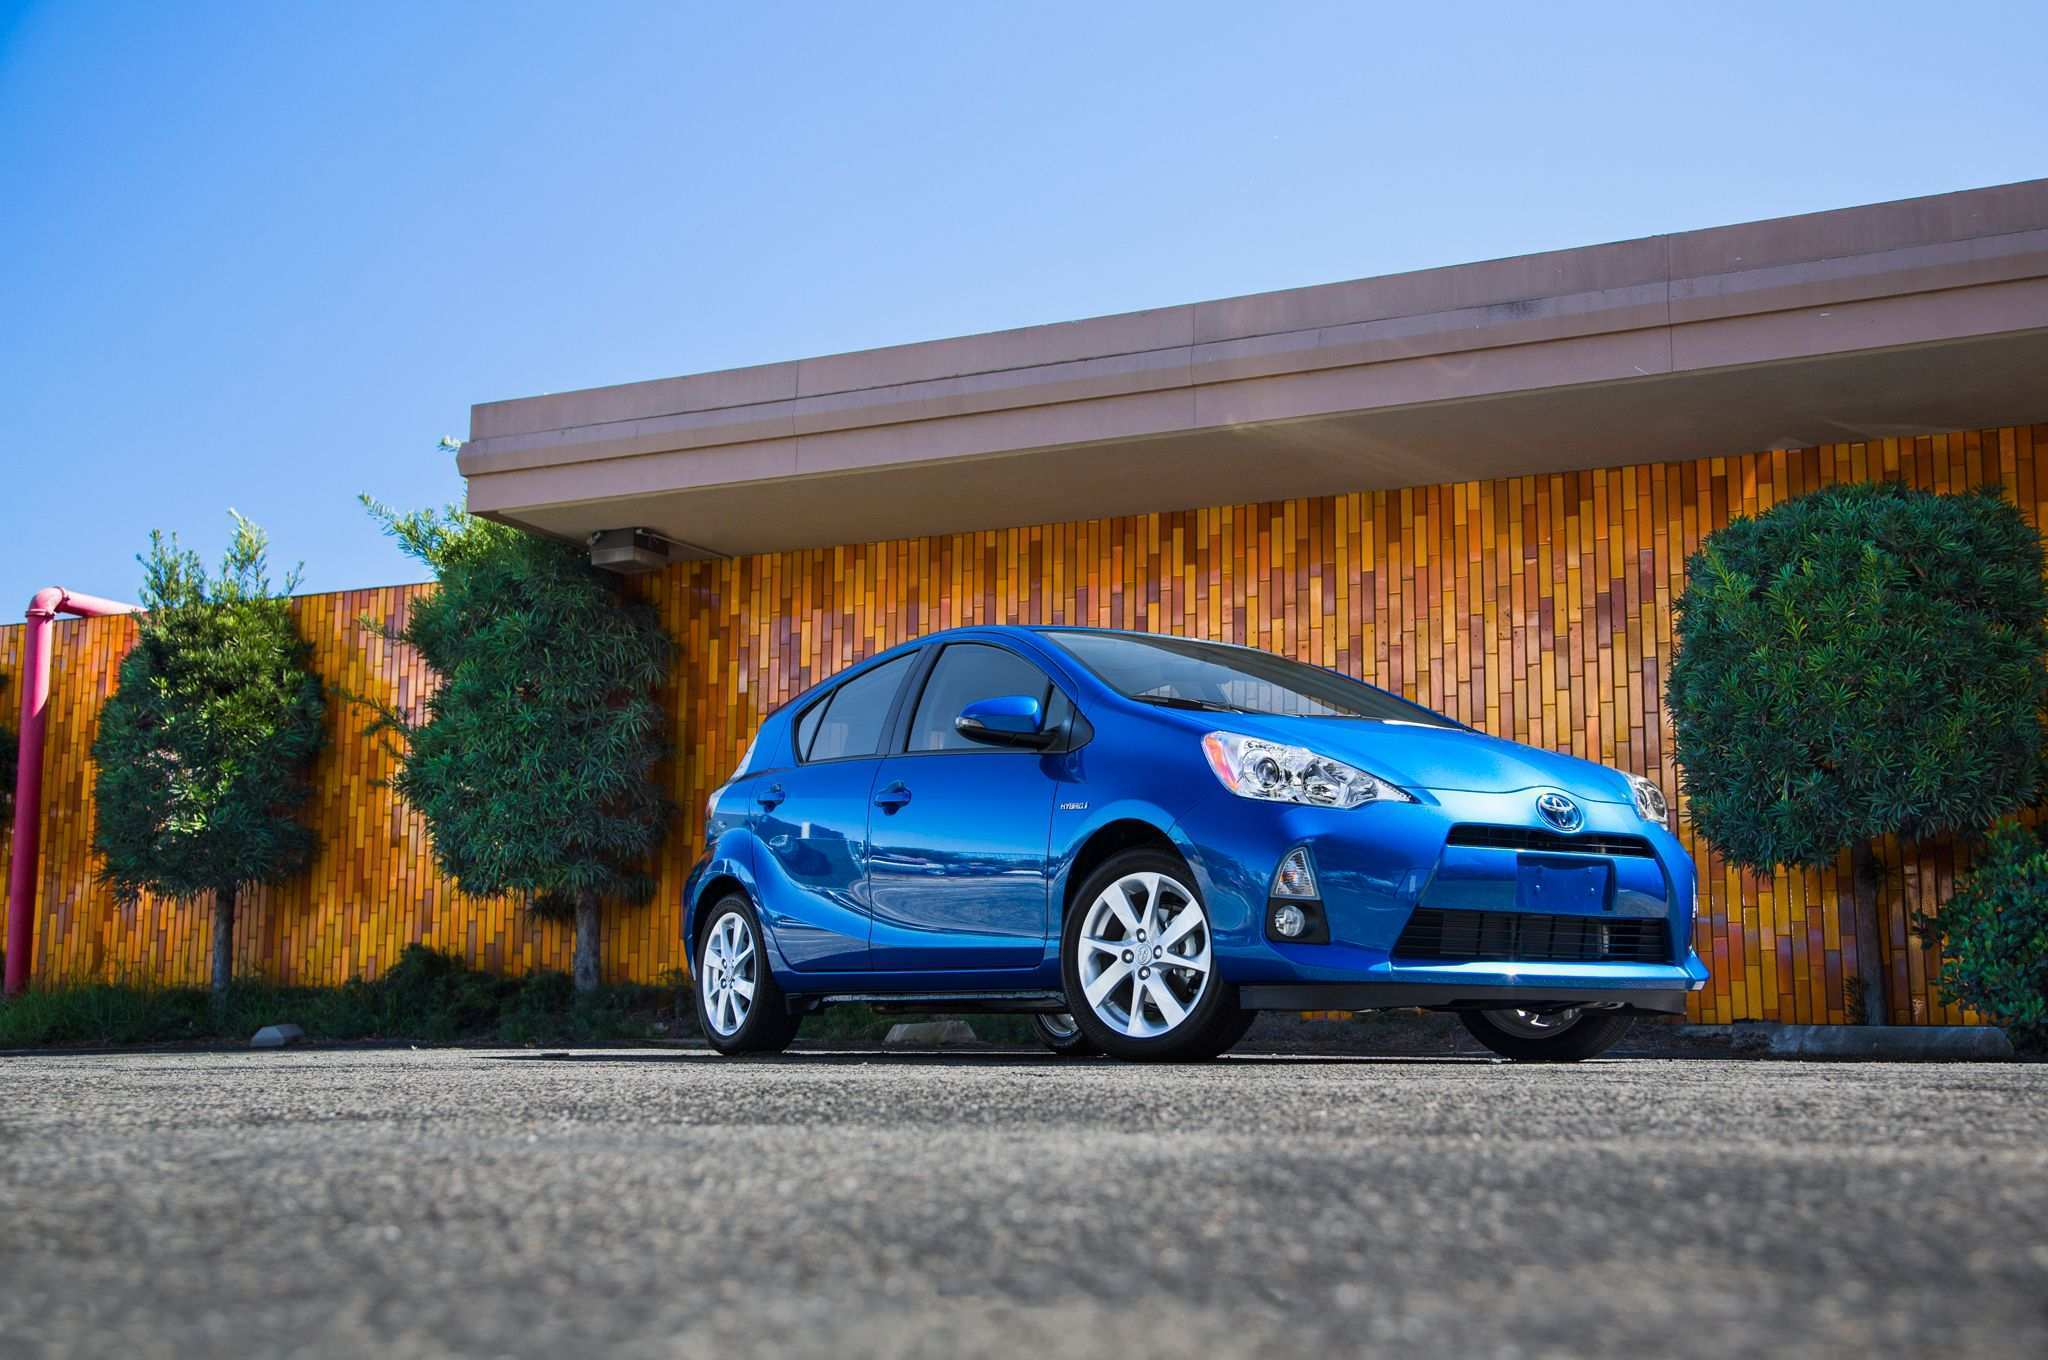 78 New 2020 Toyota Prius C Performance and New Engine by 2020 Toyota Prius C